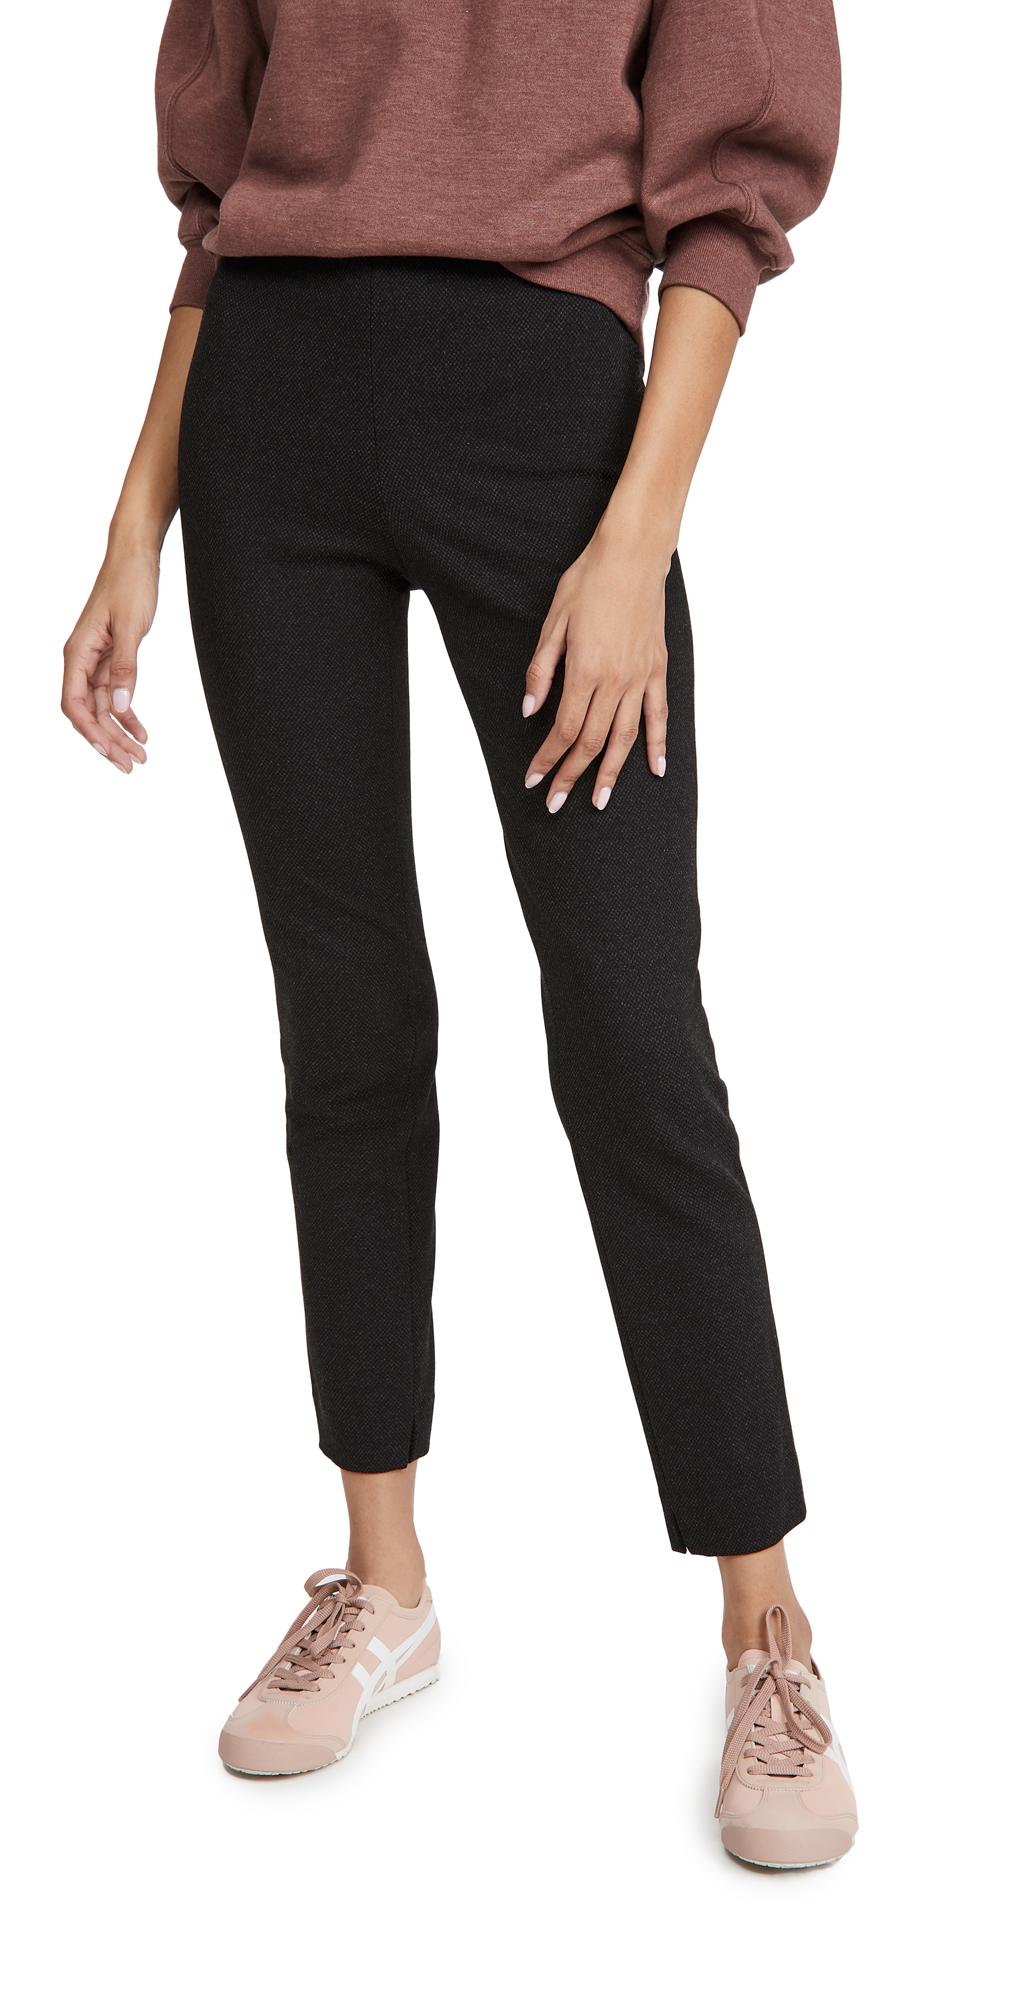 Theory K Skinny Leggings